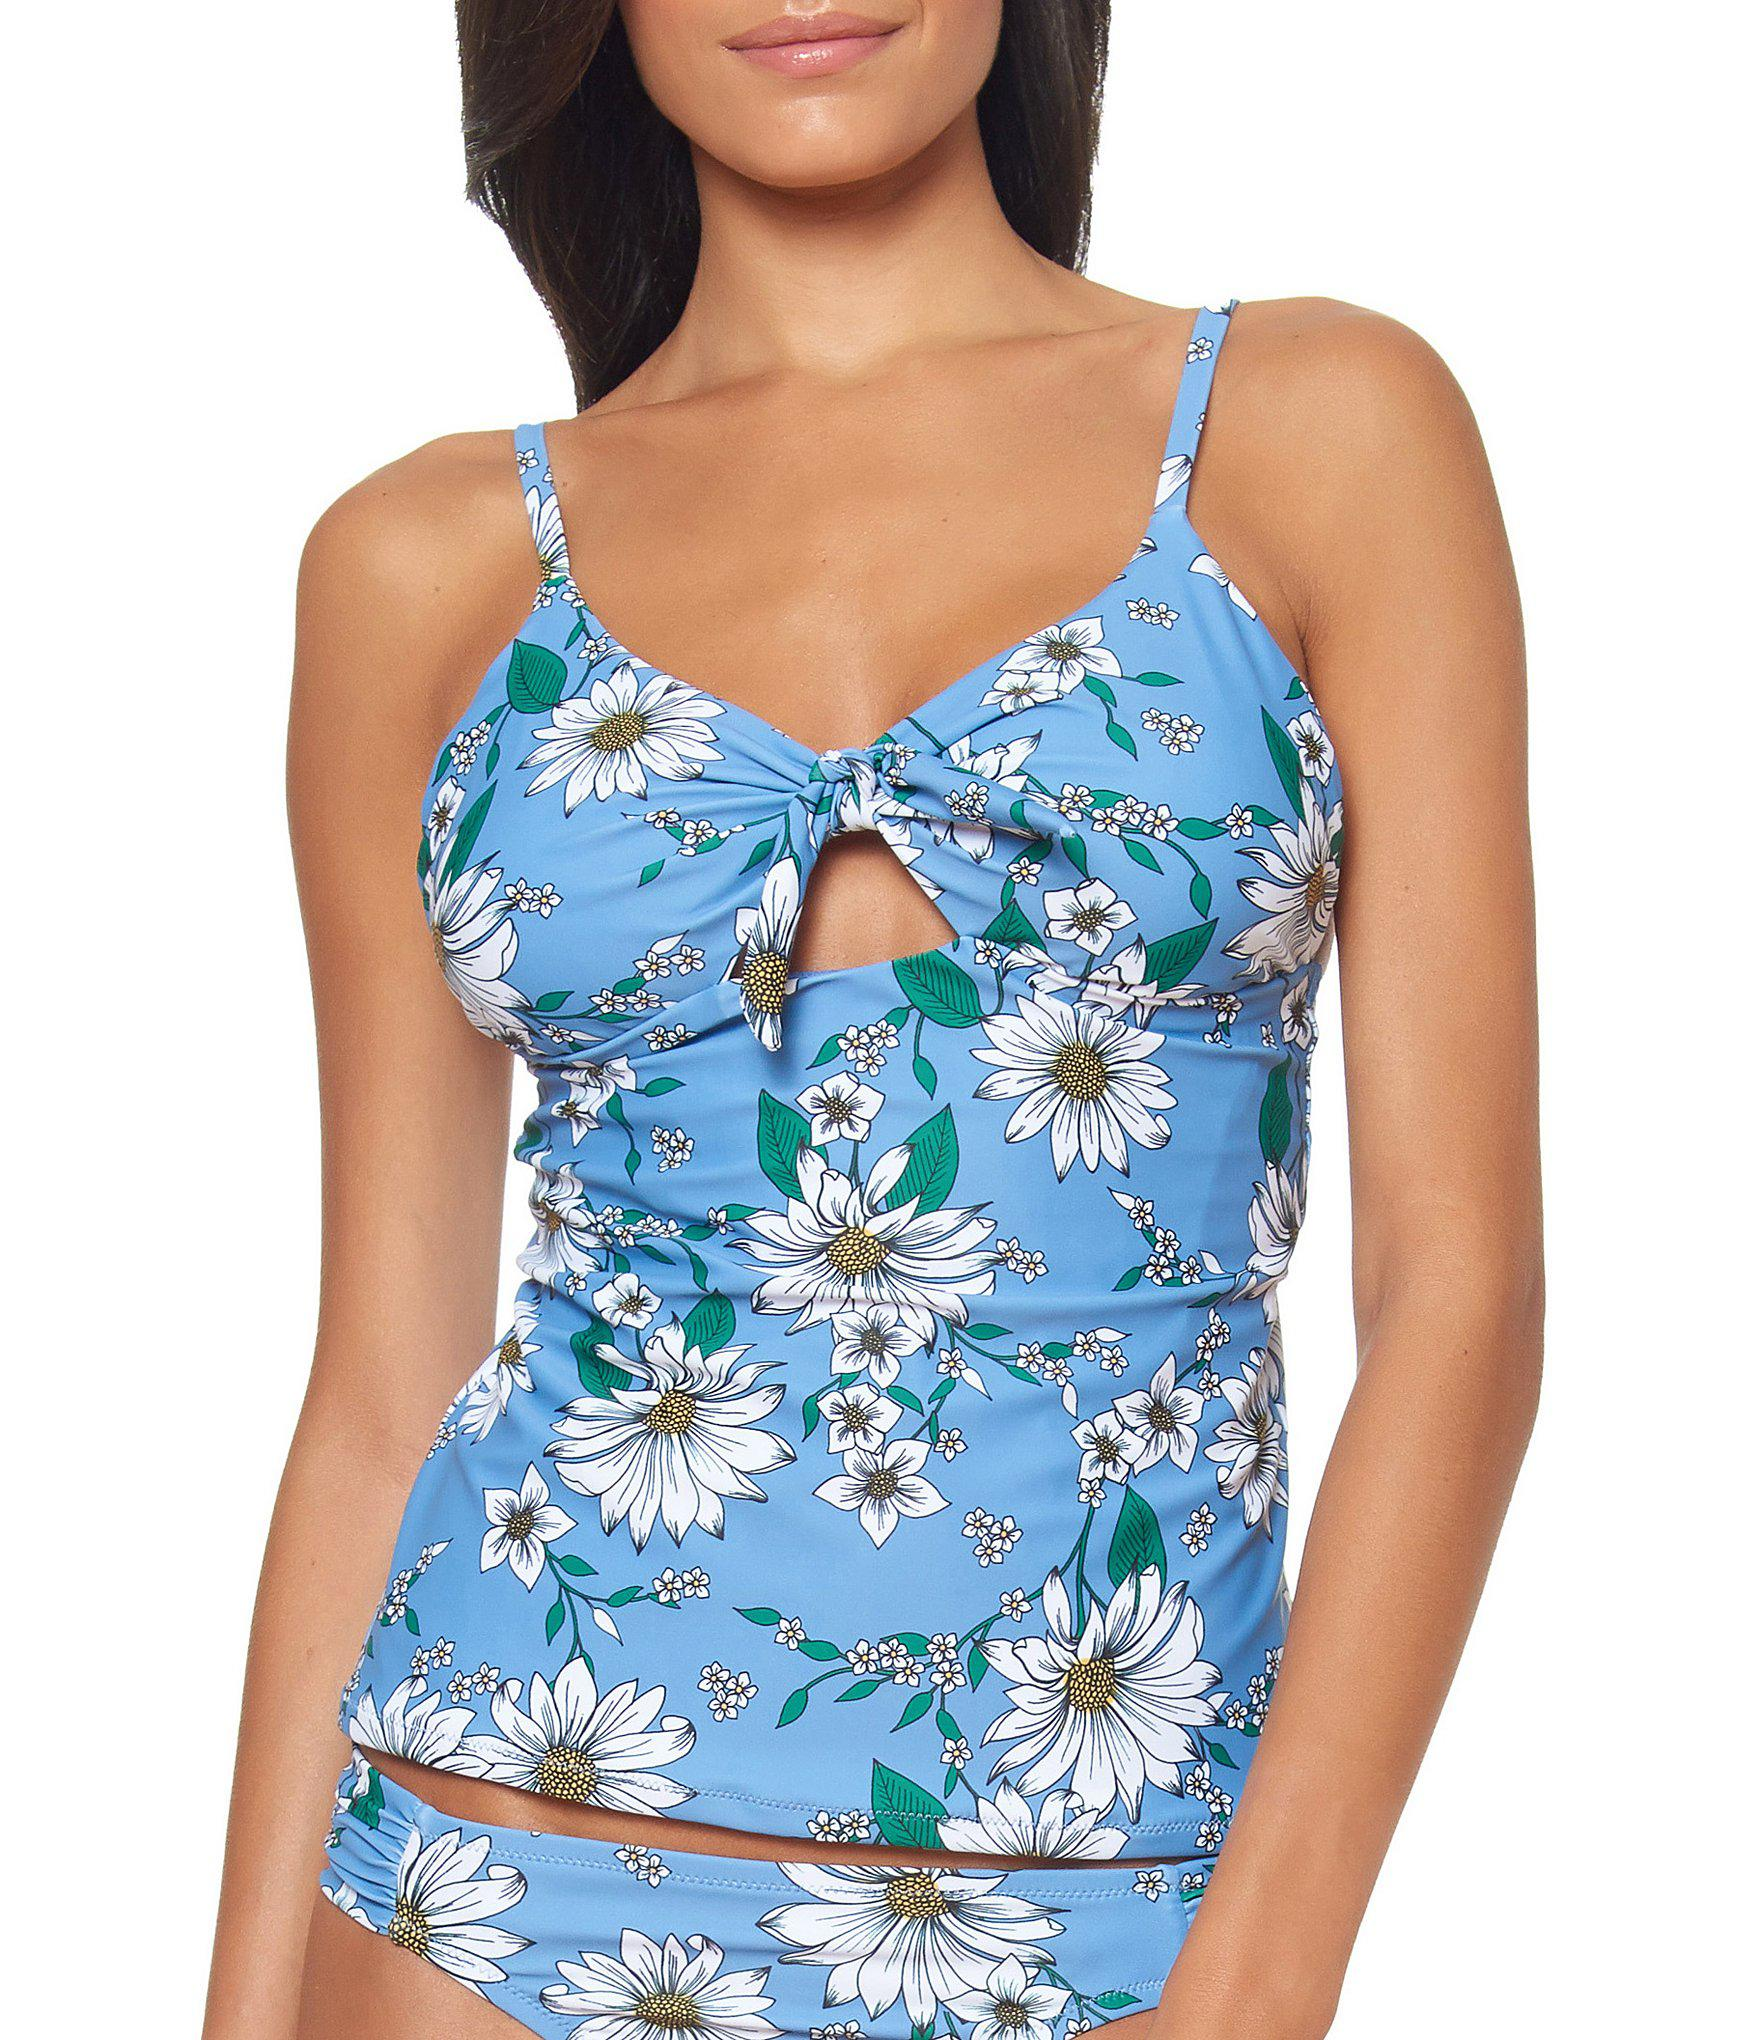 ac3cbc3aac Jessica Simpson. Women s Blue Oopsy Daisy Floral Print Tie Front Tankini Swimsuit  Top